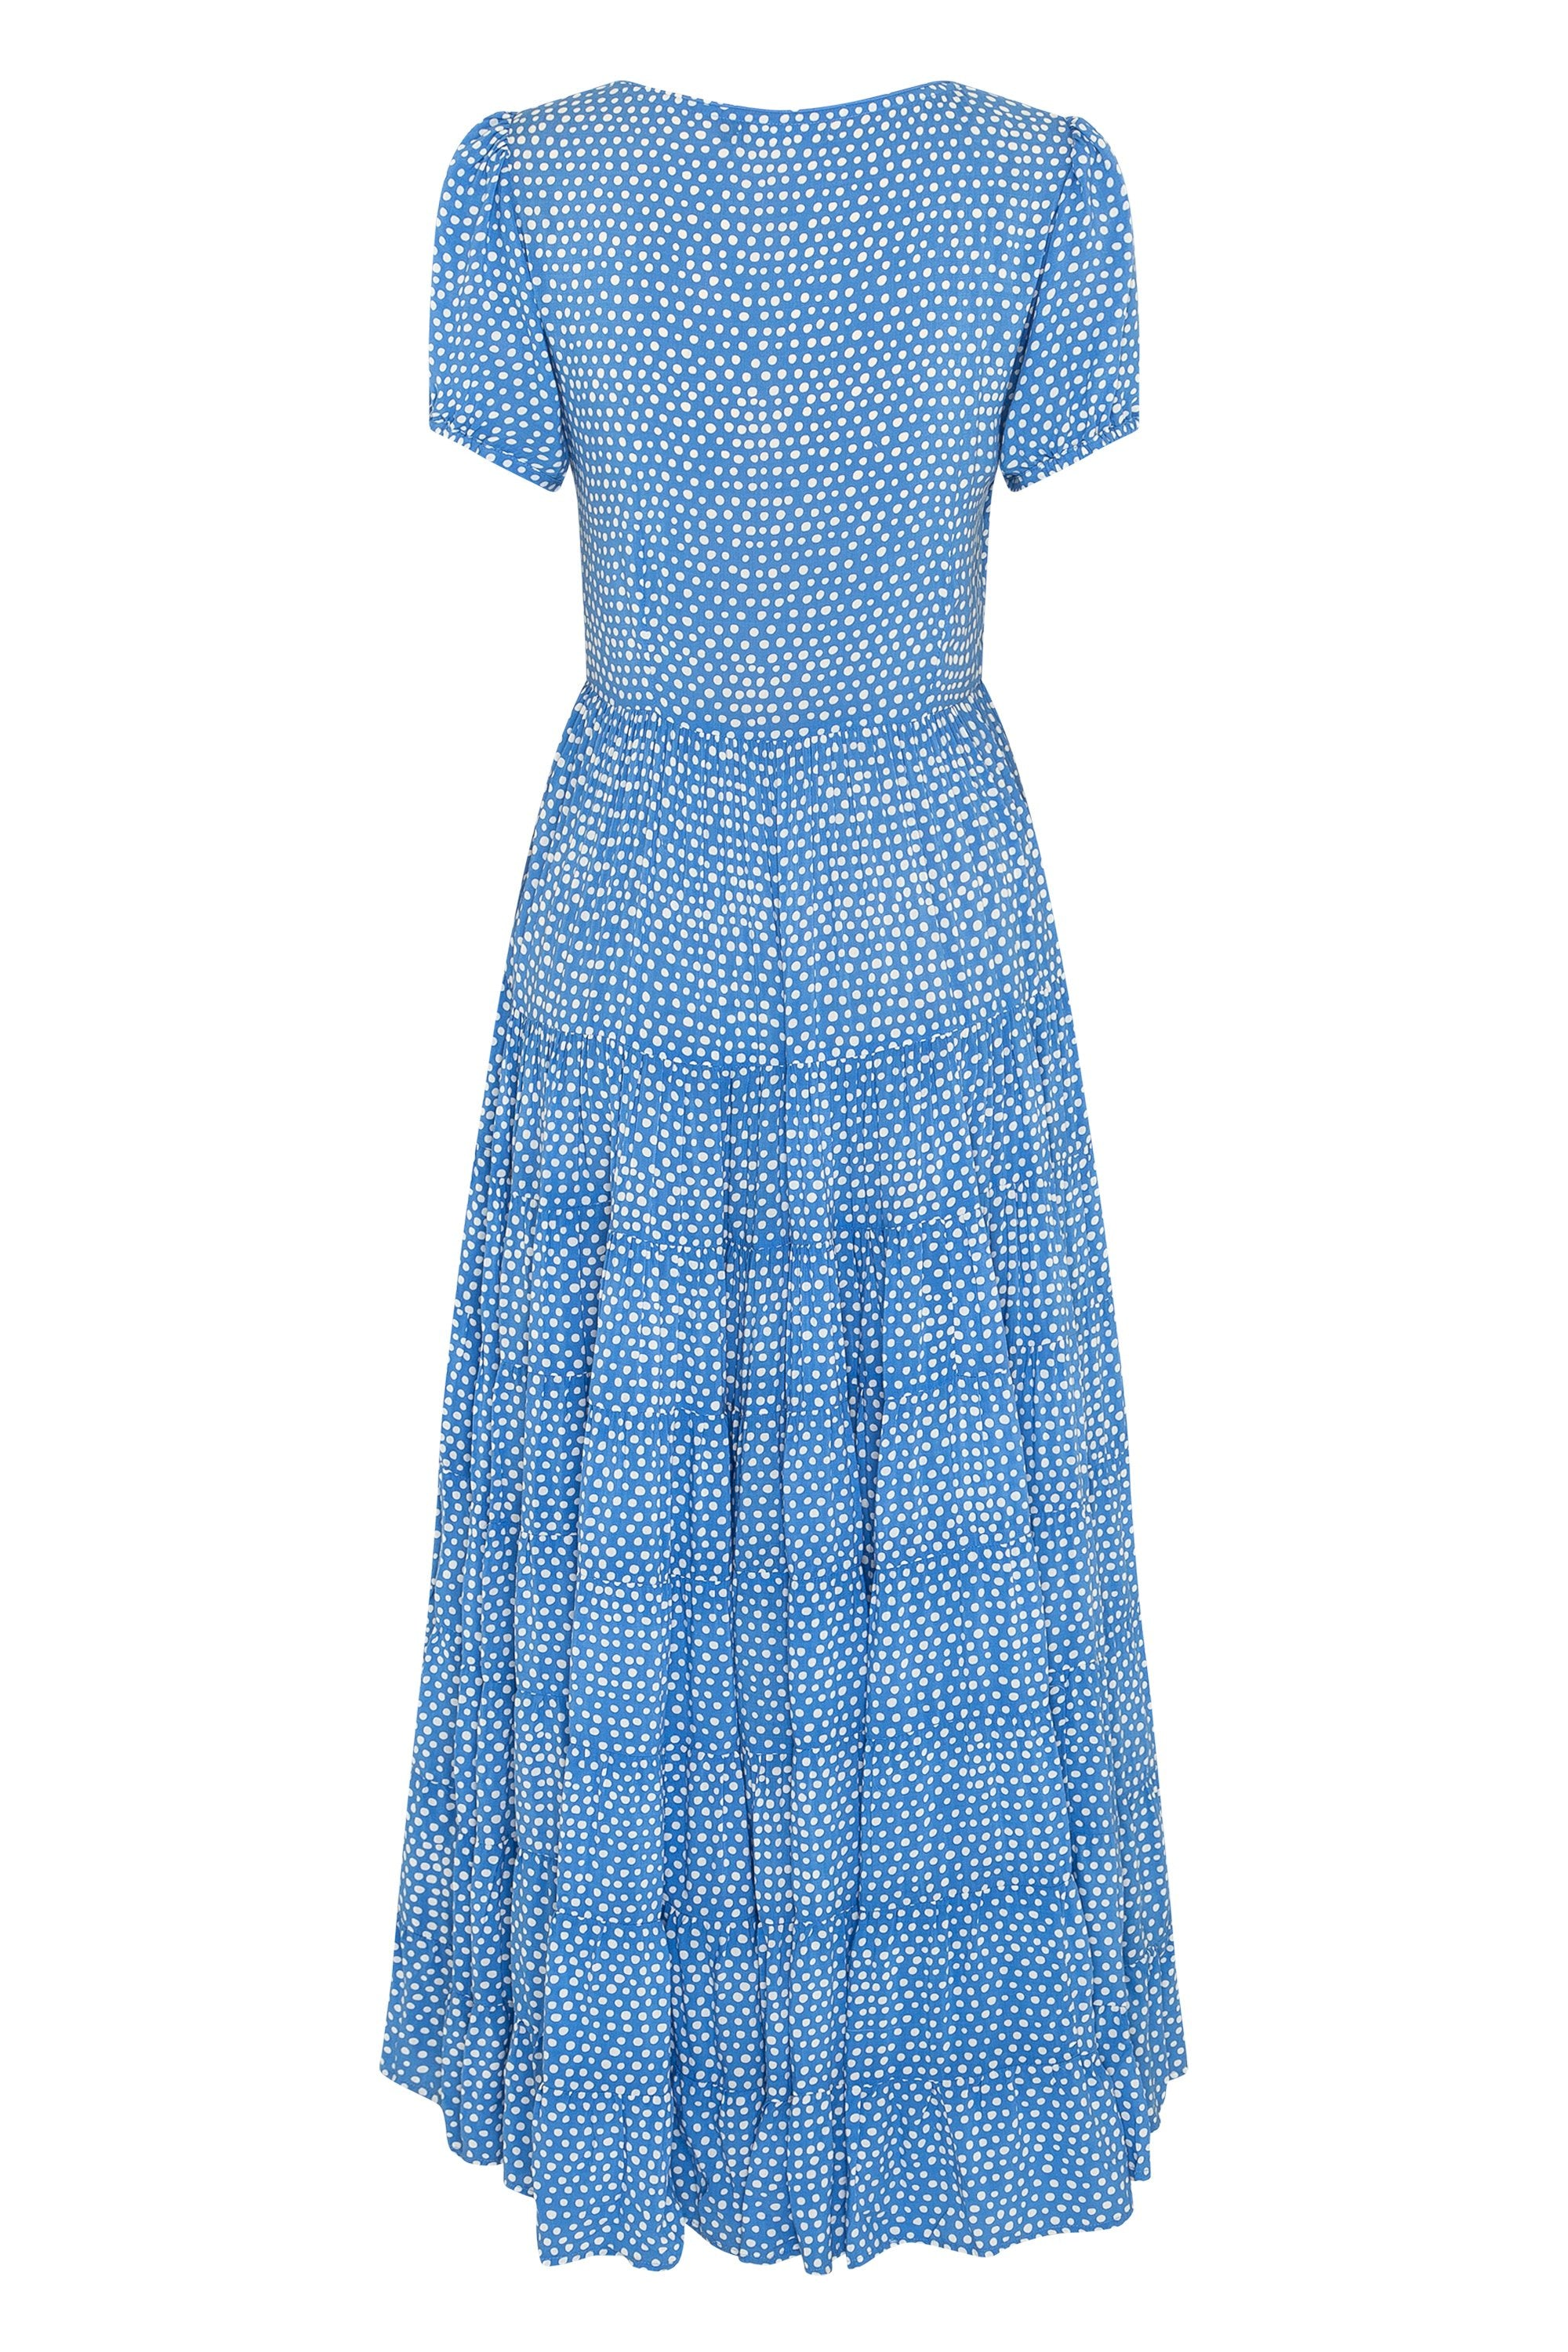 Roos Maxi Dress In Sky Blue